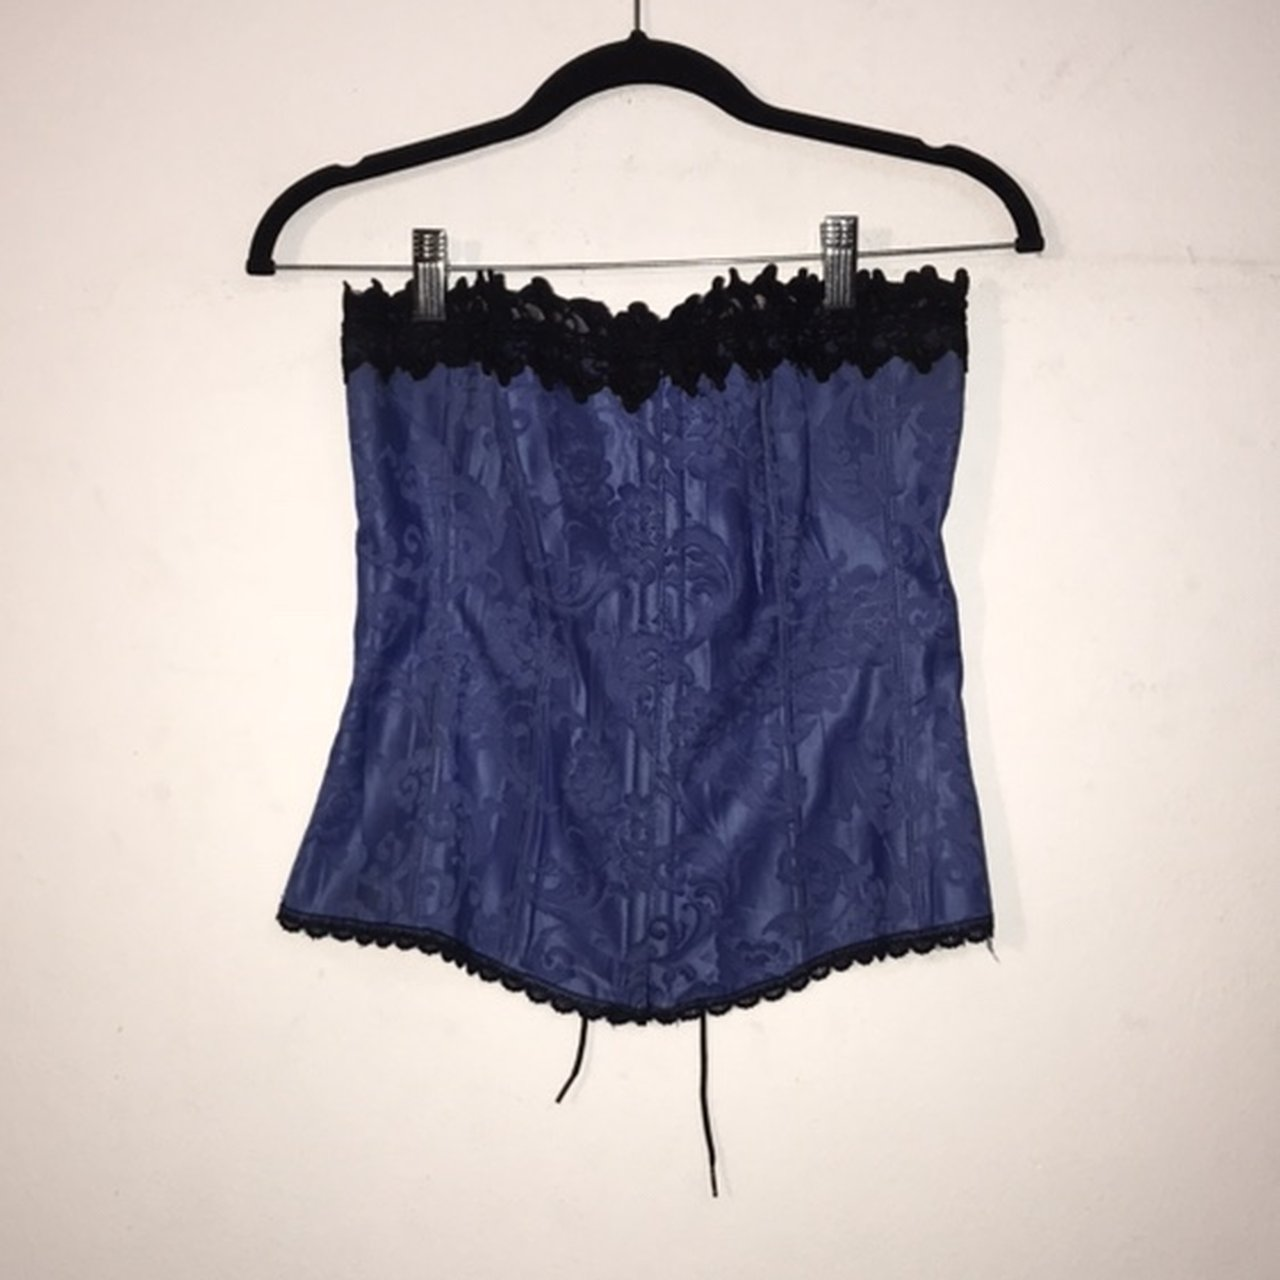 0cce82fabe  mmvtg. in 6 hours. United States. Vintage 80s Satiny blue and black lace  corset ...